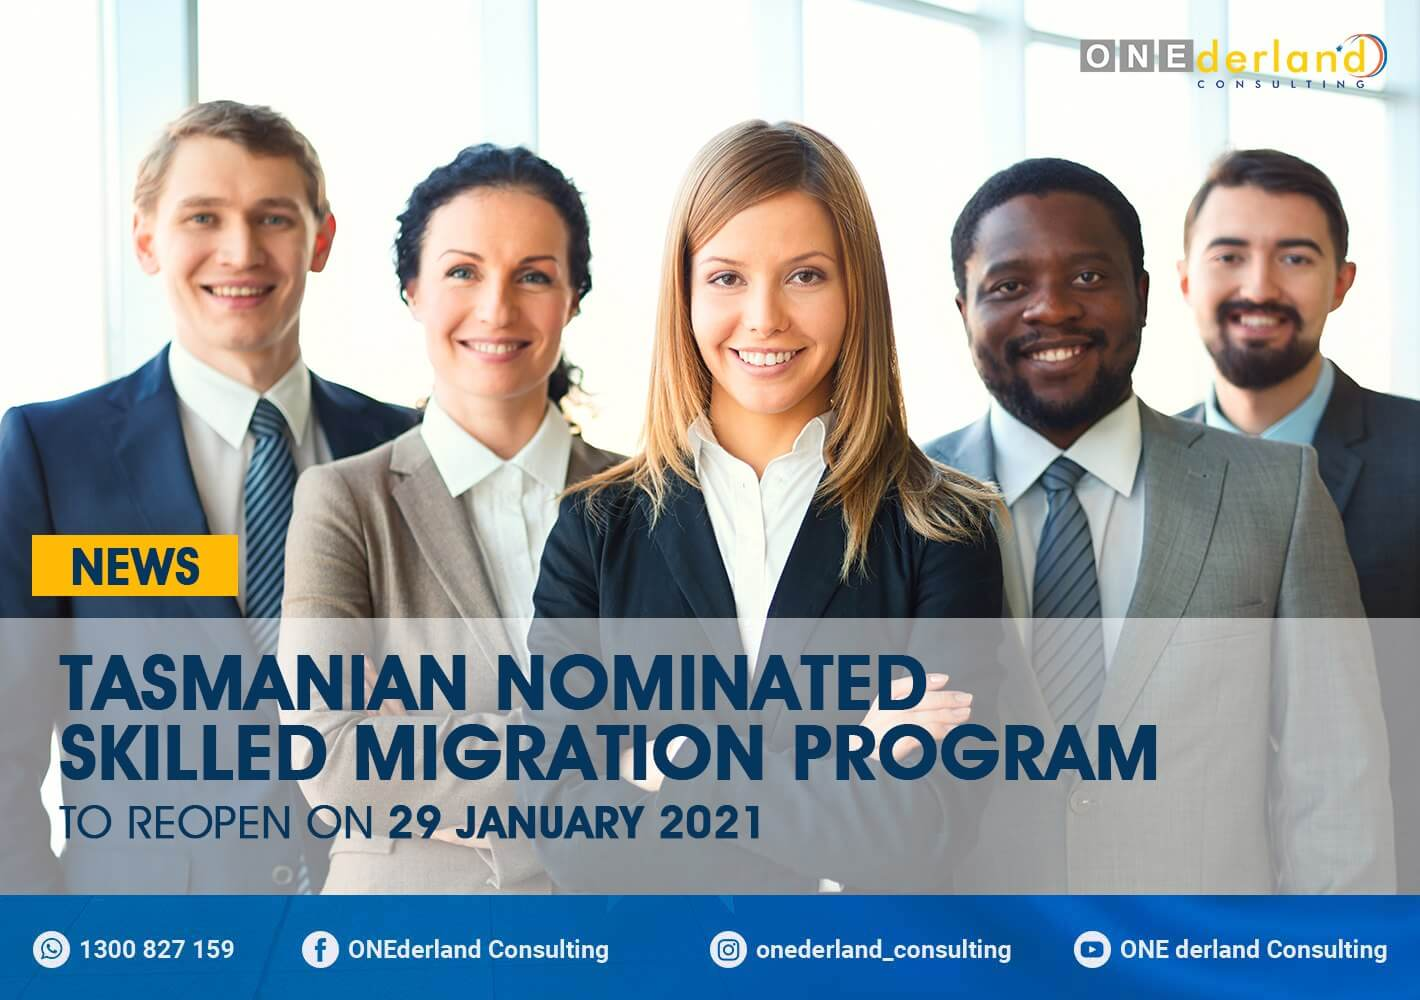 Tasmanian Nominated Skilled Migration Program Reopens On 29 January 2021